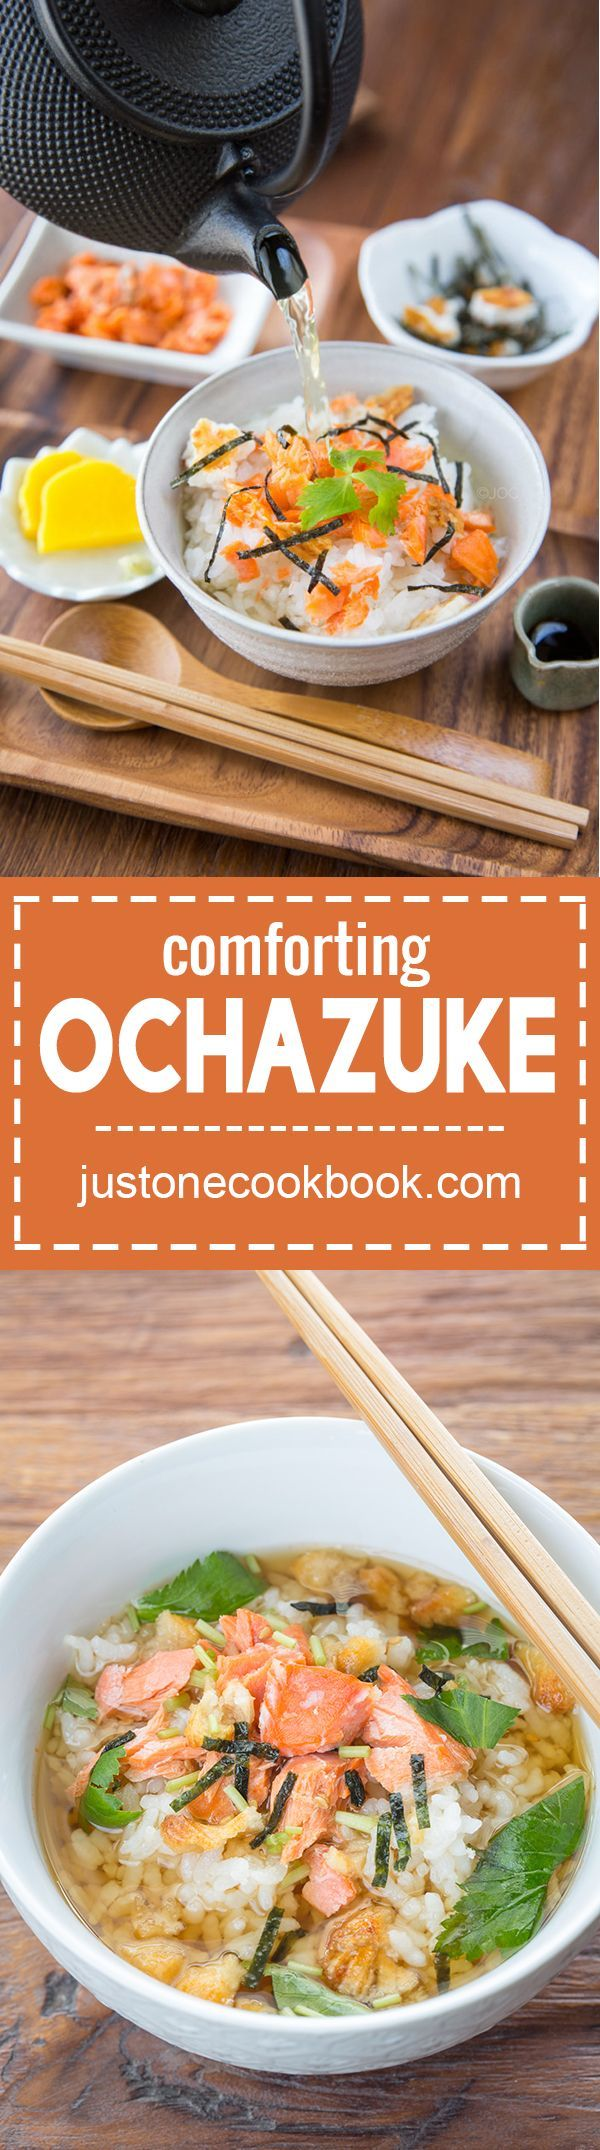 Ochazuke (お茶漬け) | Easy Japanese Recipes at http://JustOneCookbook.com